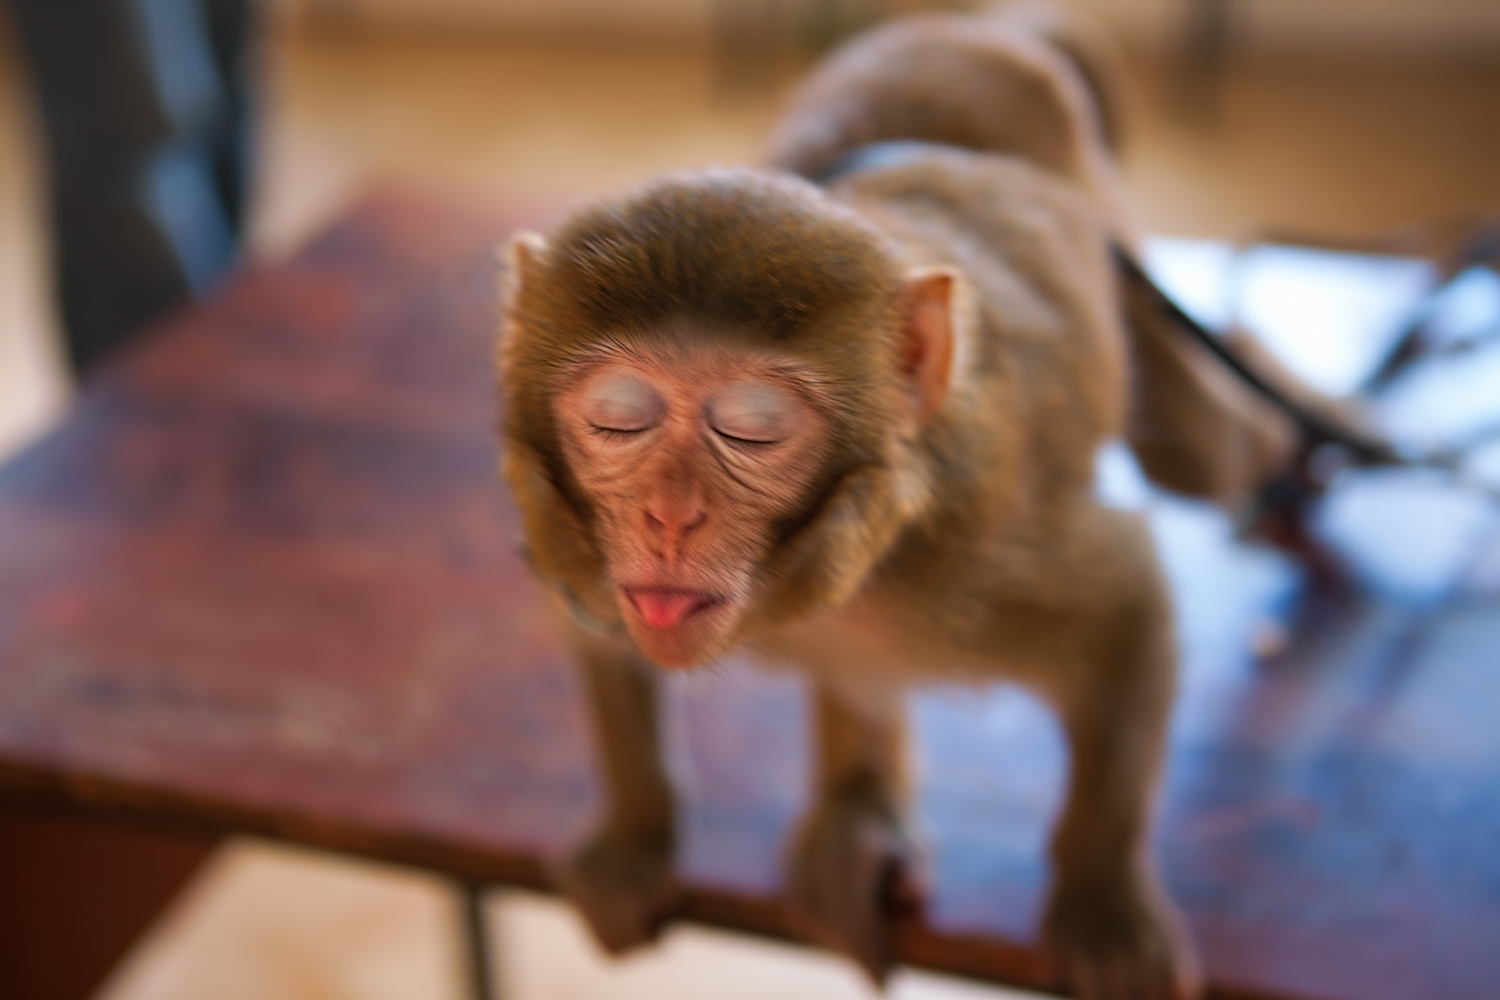 monkey, Adorable, Image, Young, Tongue, HQ Photo